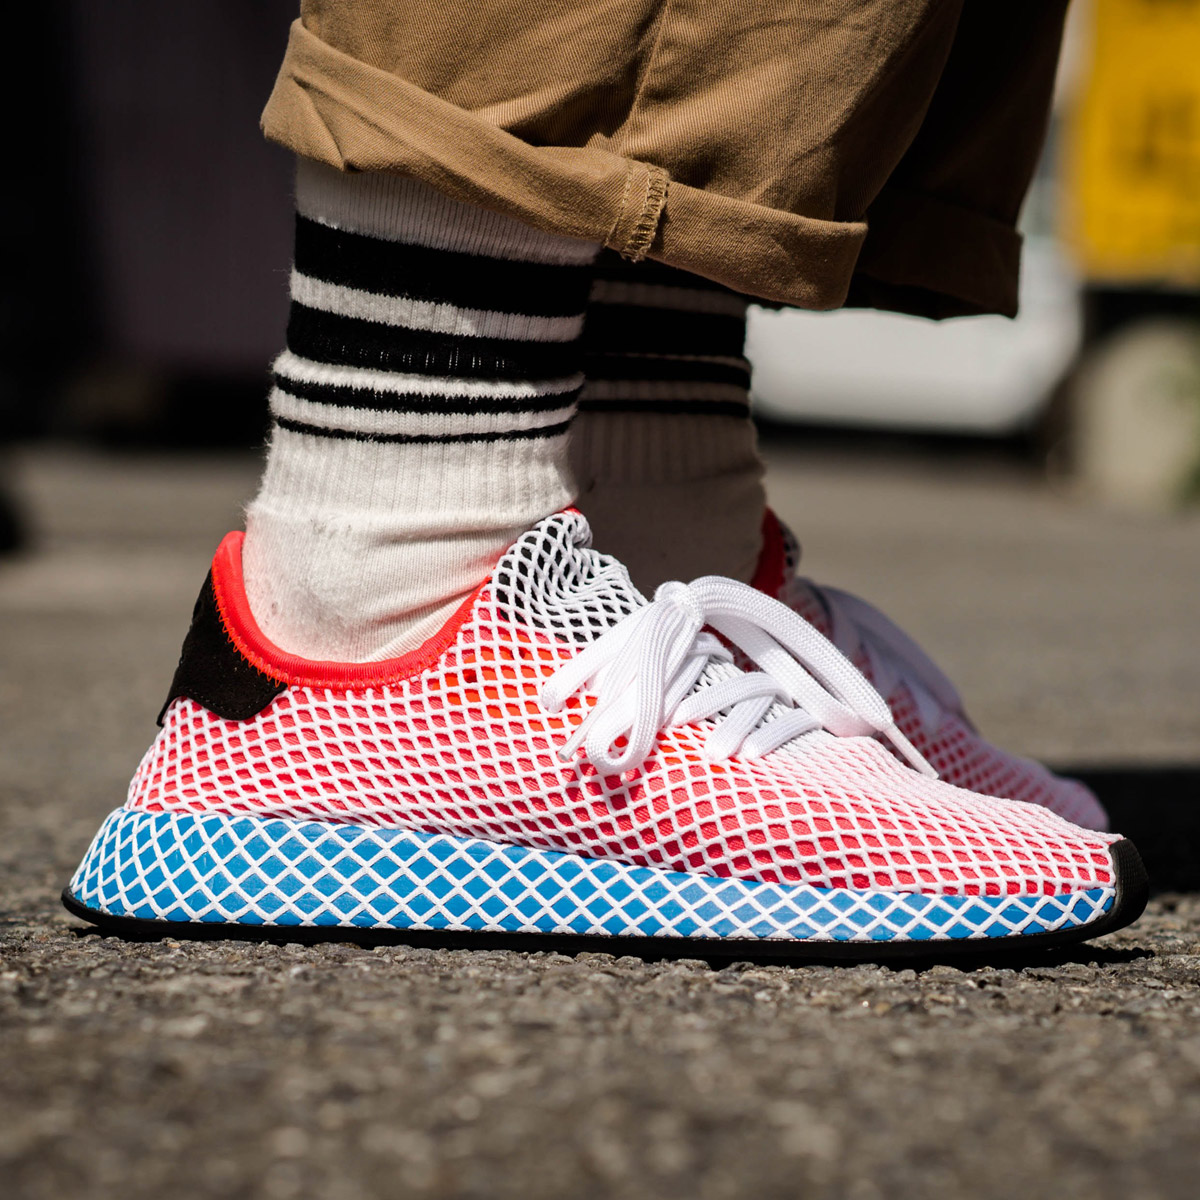 3108764b11cef adidas Originals DEERUPT RUNNER (アディダスオリジナルスディーラプトランナー) (Solar Red Solar  Red Blue Bird) 18SS-I